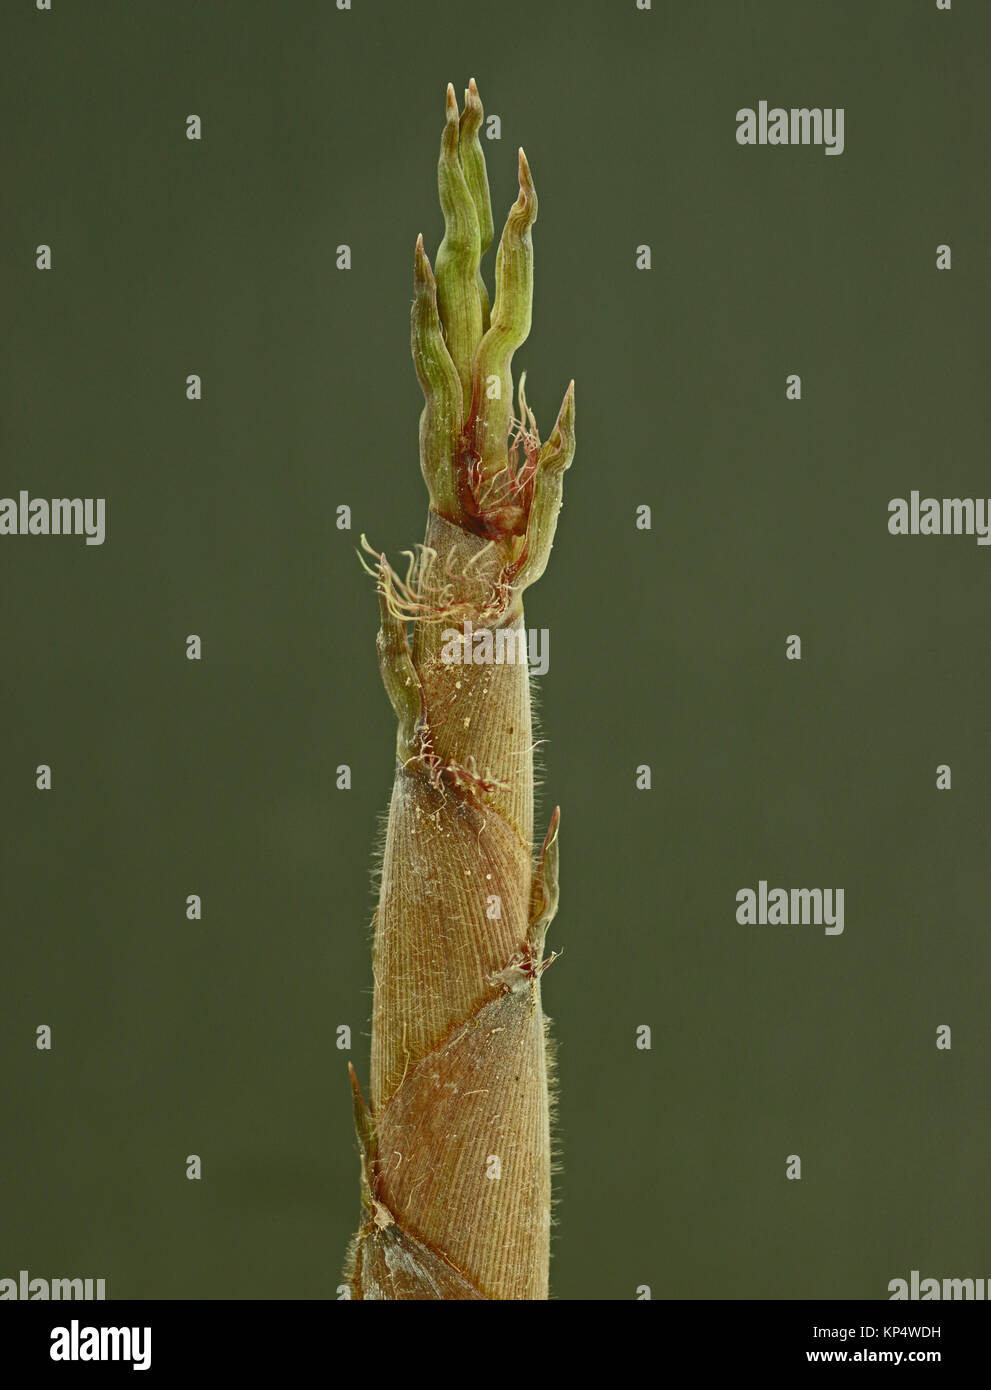 Close up of a bamboo shoot of the black bamboo - Stock Image